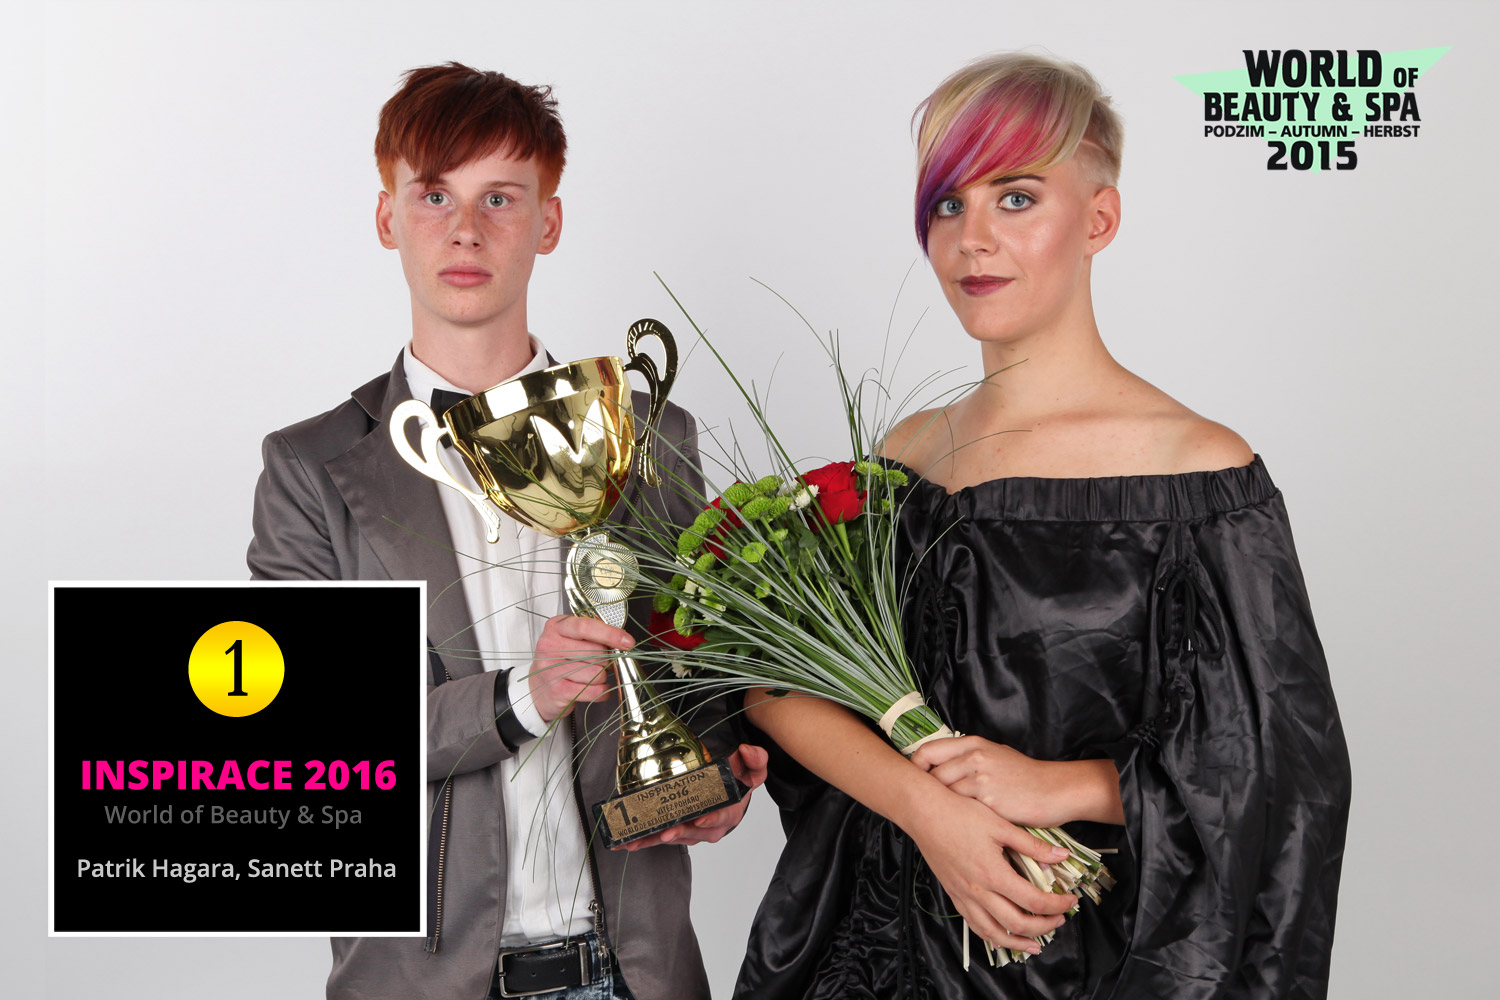 World of Beauty & Spa – Inspiration 2016: 1st place Patrik Hagara, Sanett